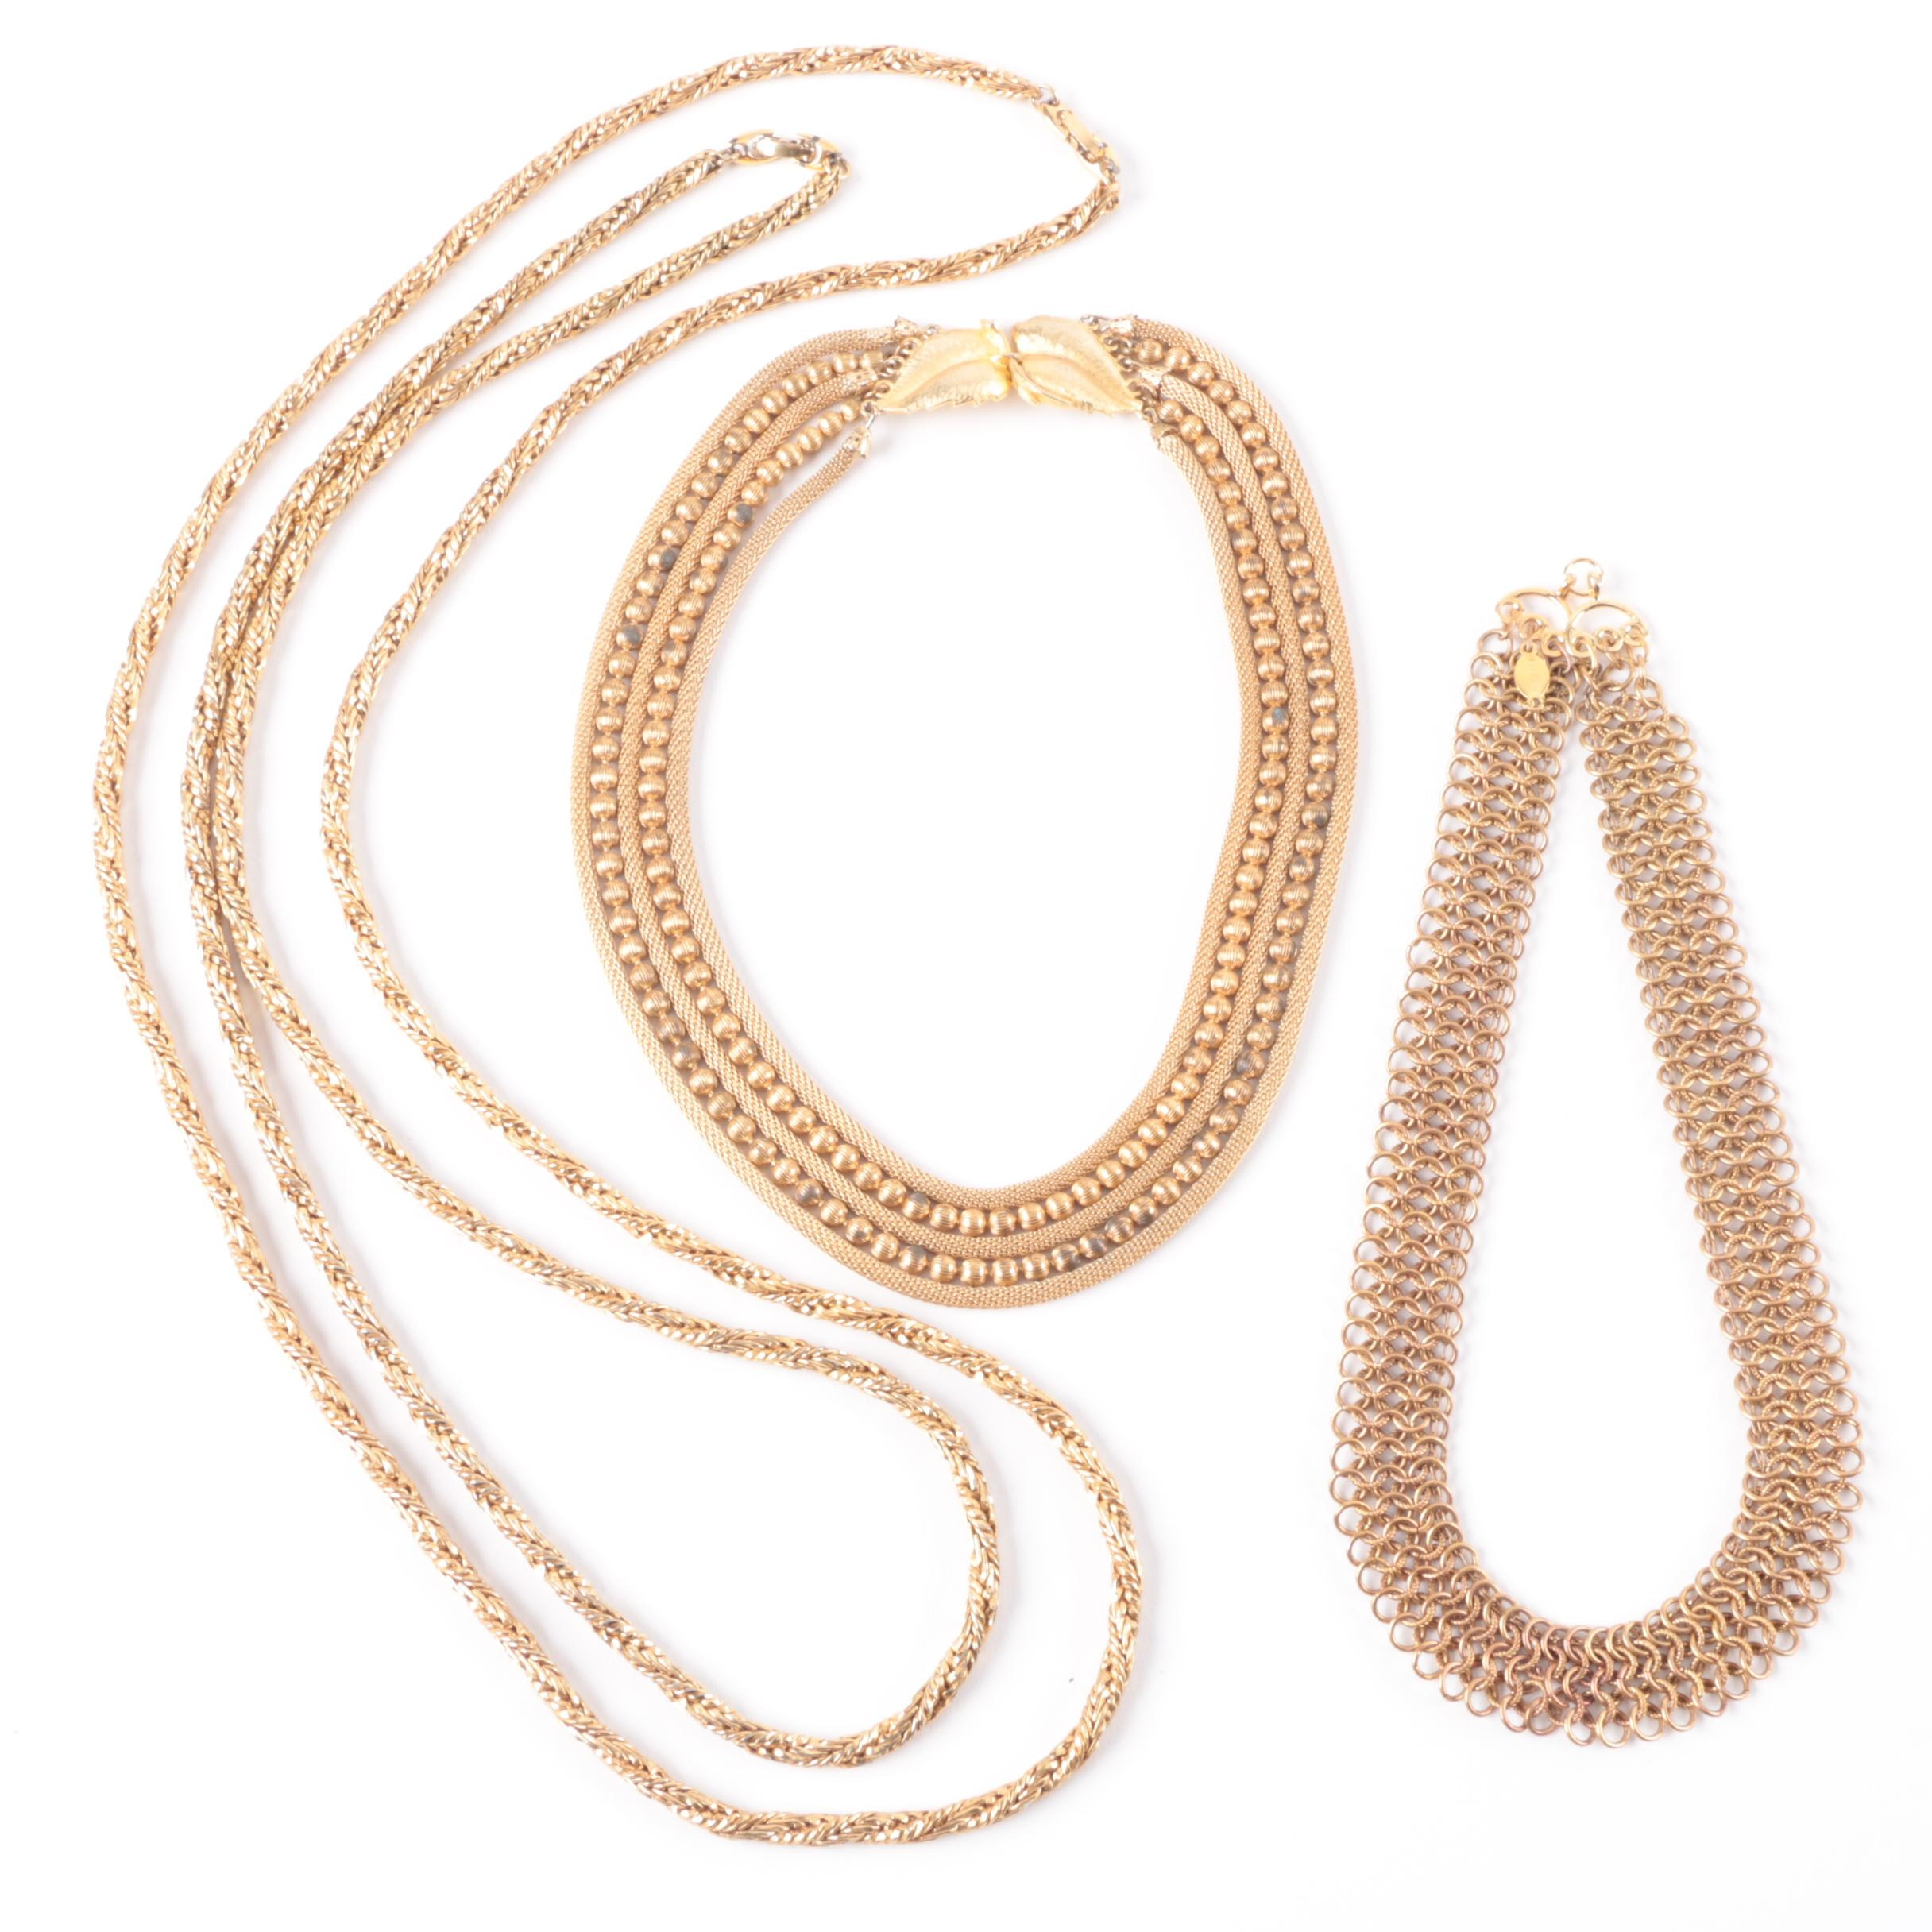 Grouping of Gold Tone Necklaces